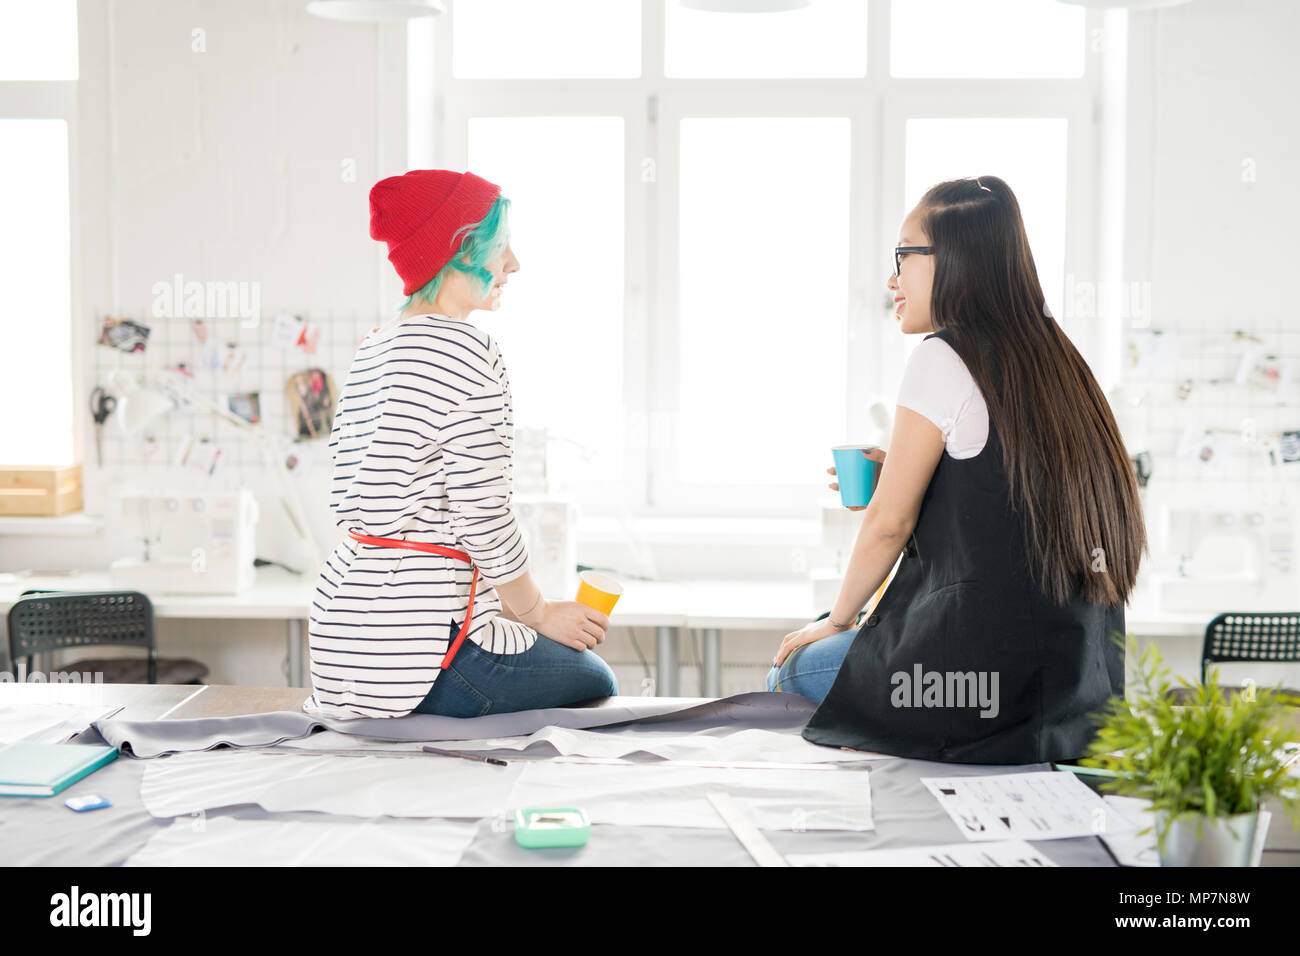 Two Fashion  Designers Chatting at Work - Stock Image